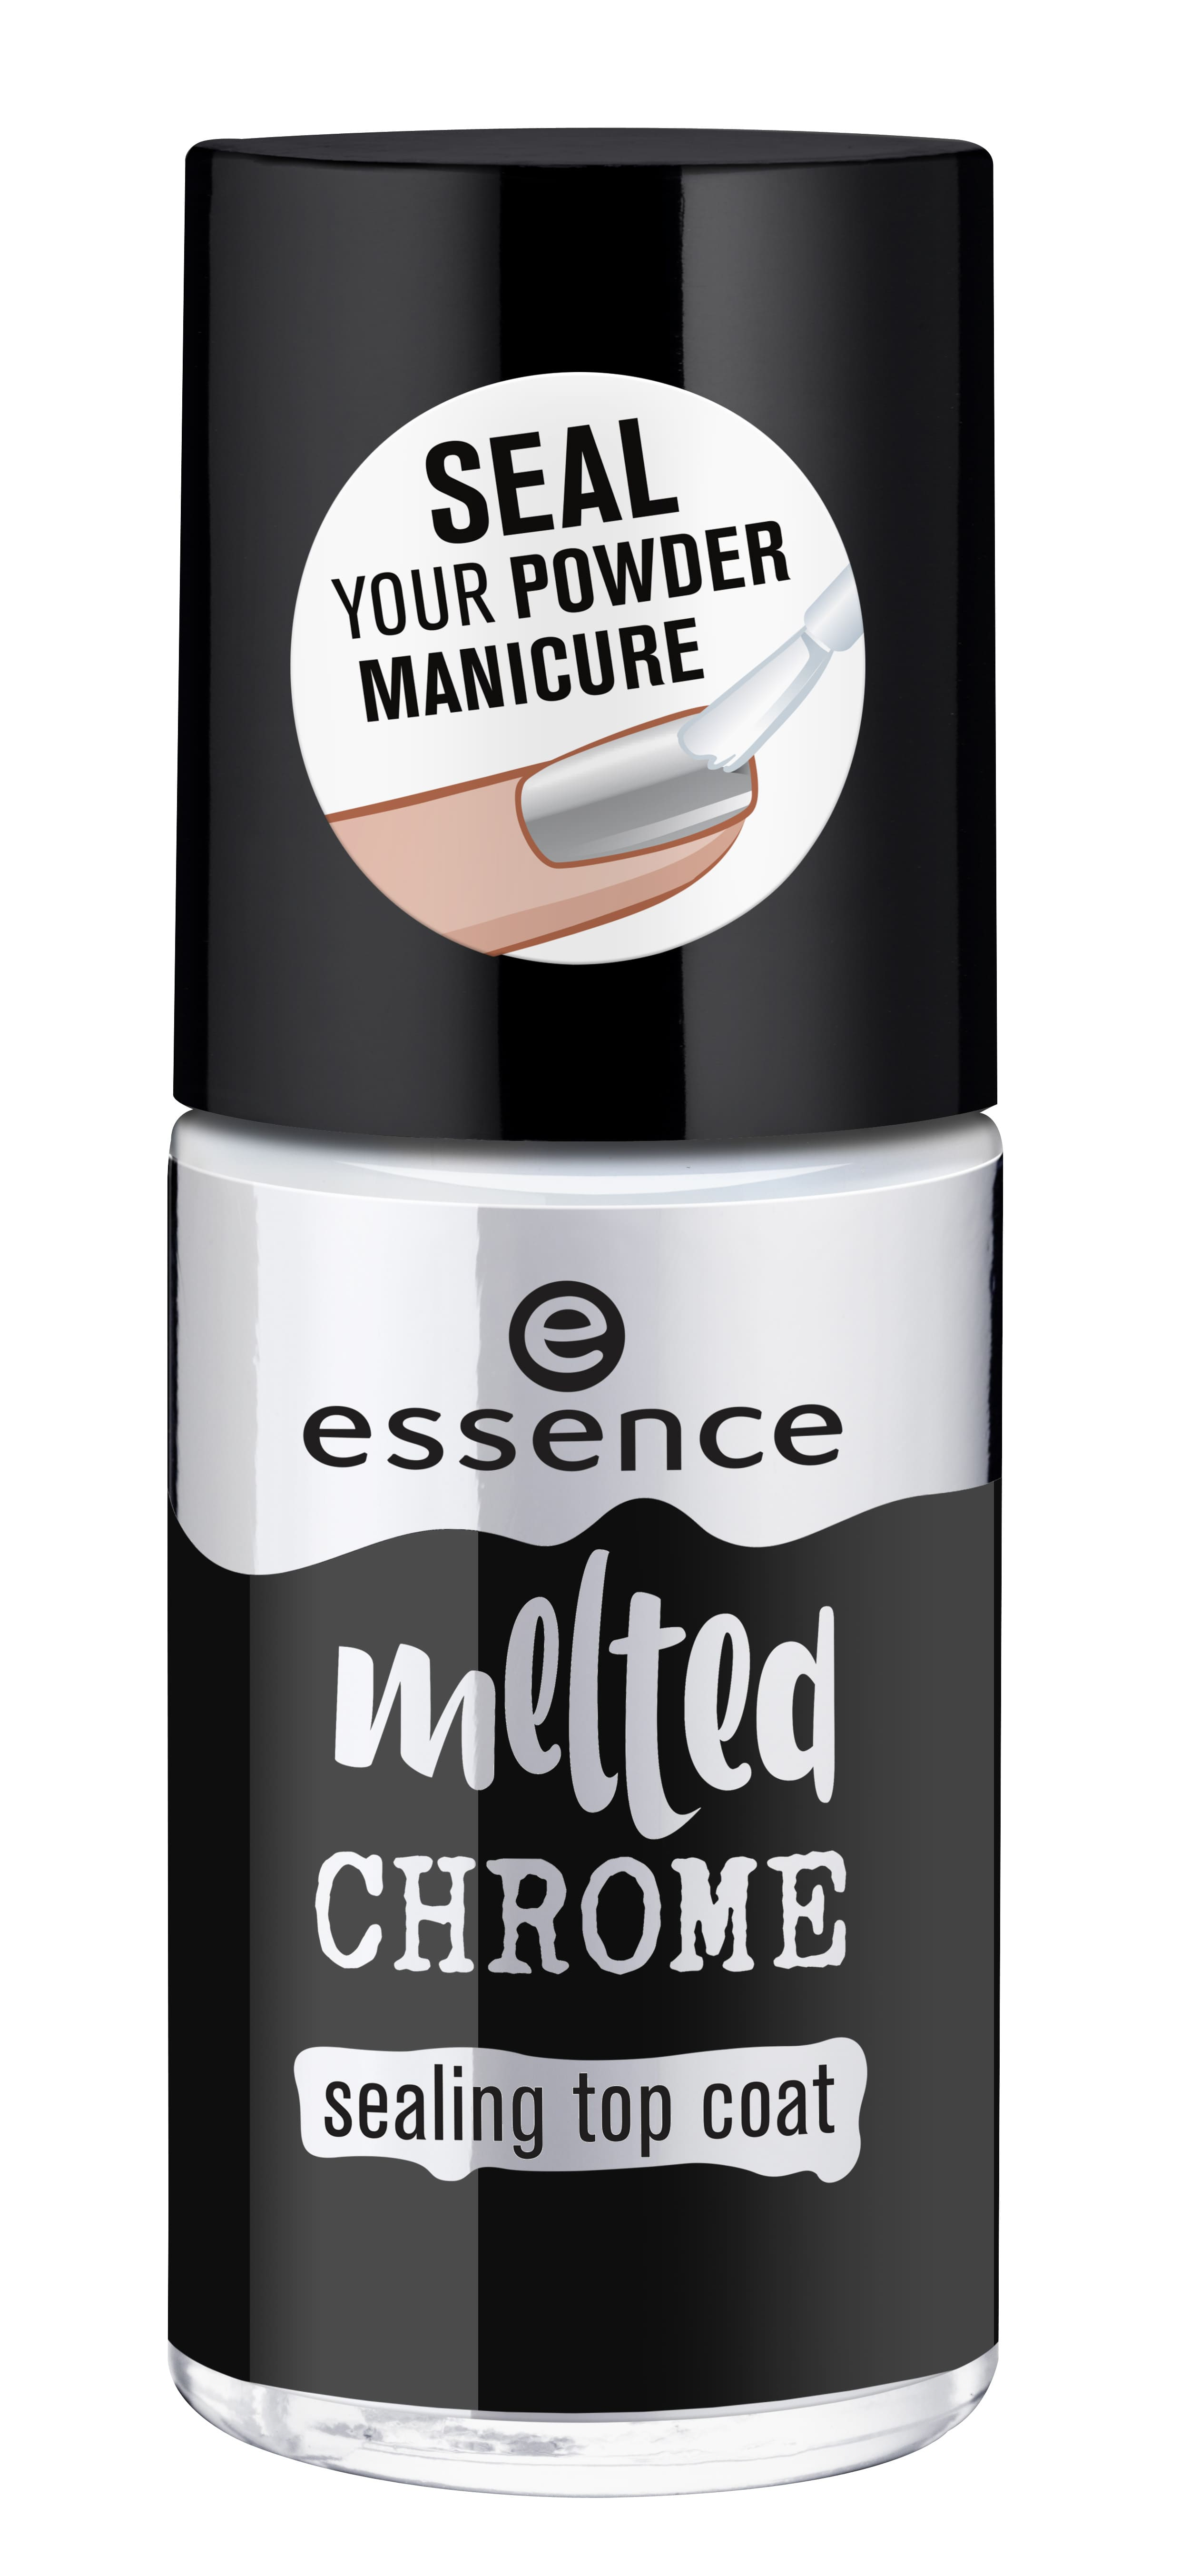 essence-melted-chrome-sealing-top-coat-e3-80-10-55-16